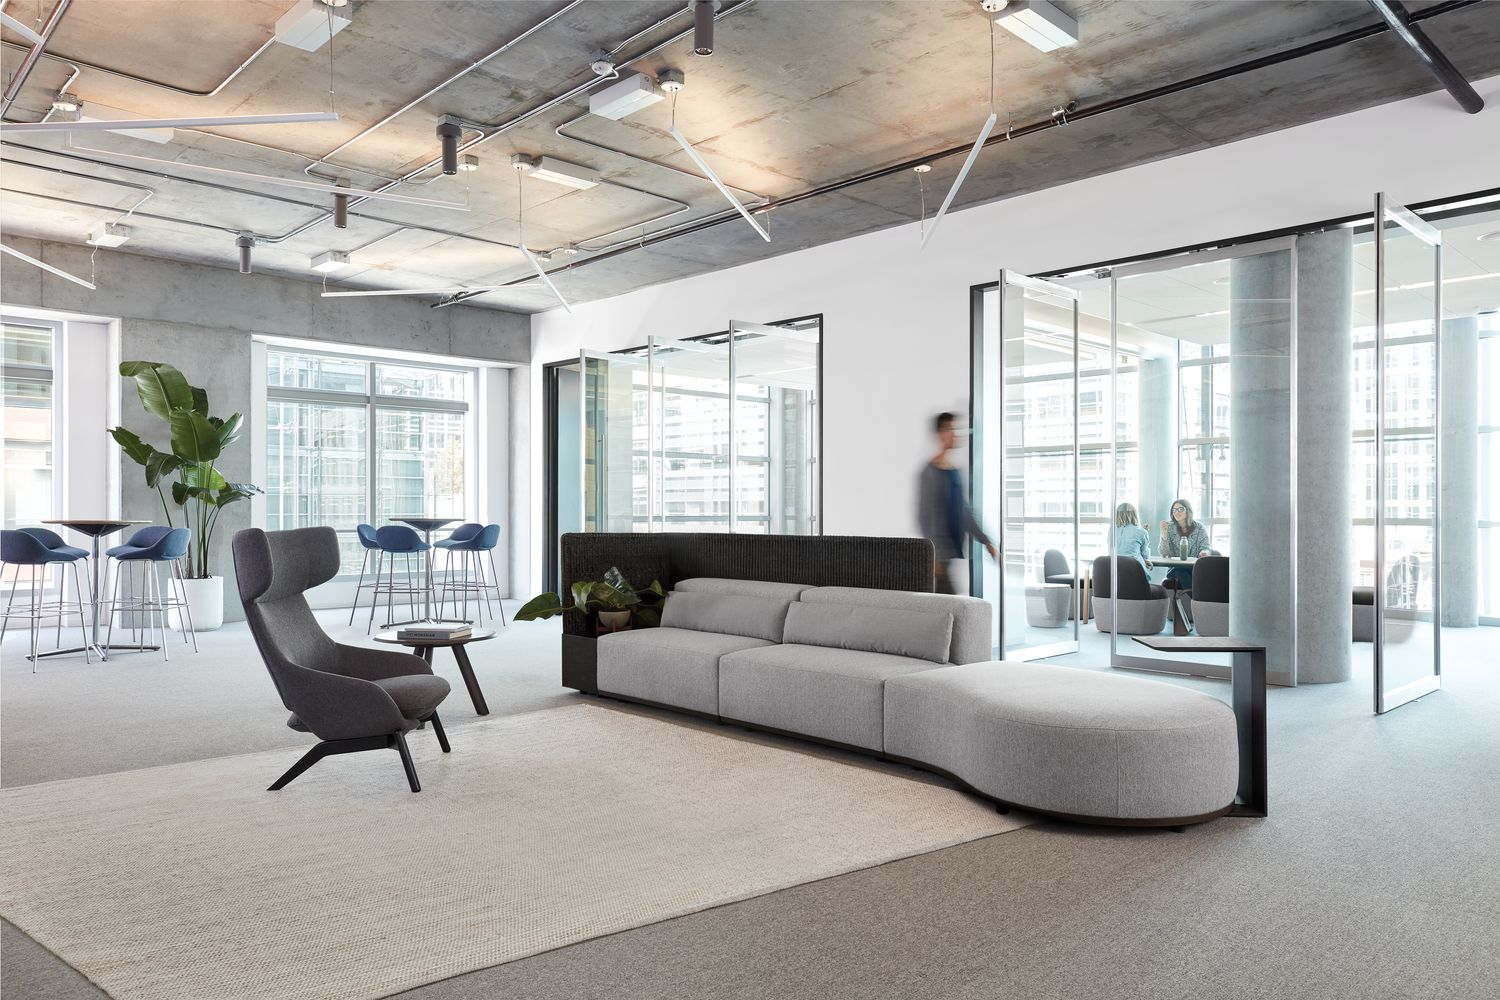 Borough collection of modular lounge seating, tables and screens